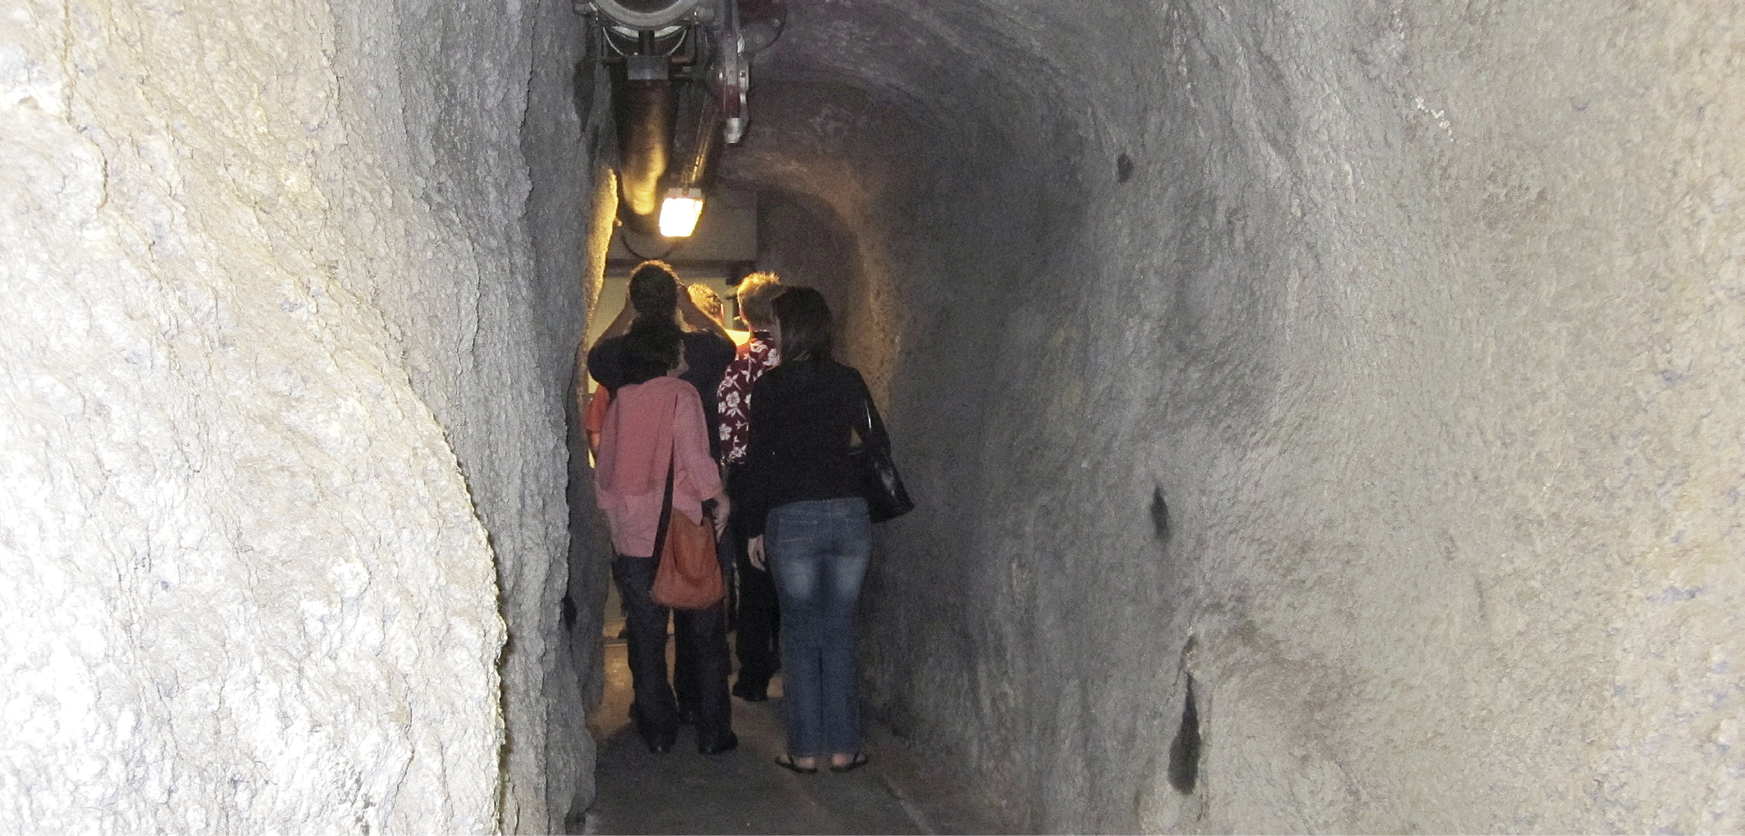 Photo of the inside of an exit cross-carriageway tunnel. The walls are roughly-hewn stone and there is a light overhead. Several adults are walking through the tunnel.